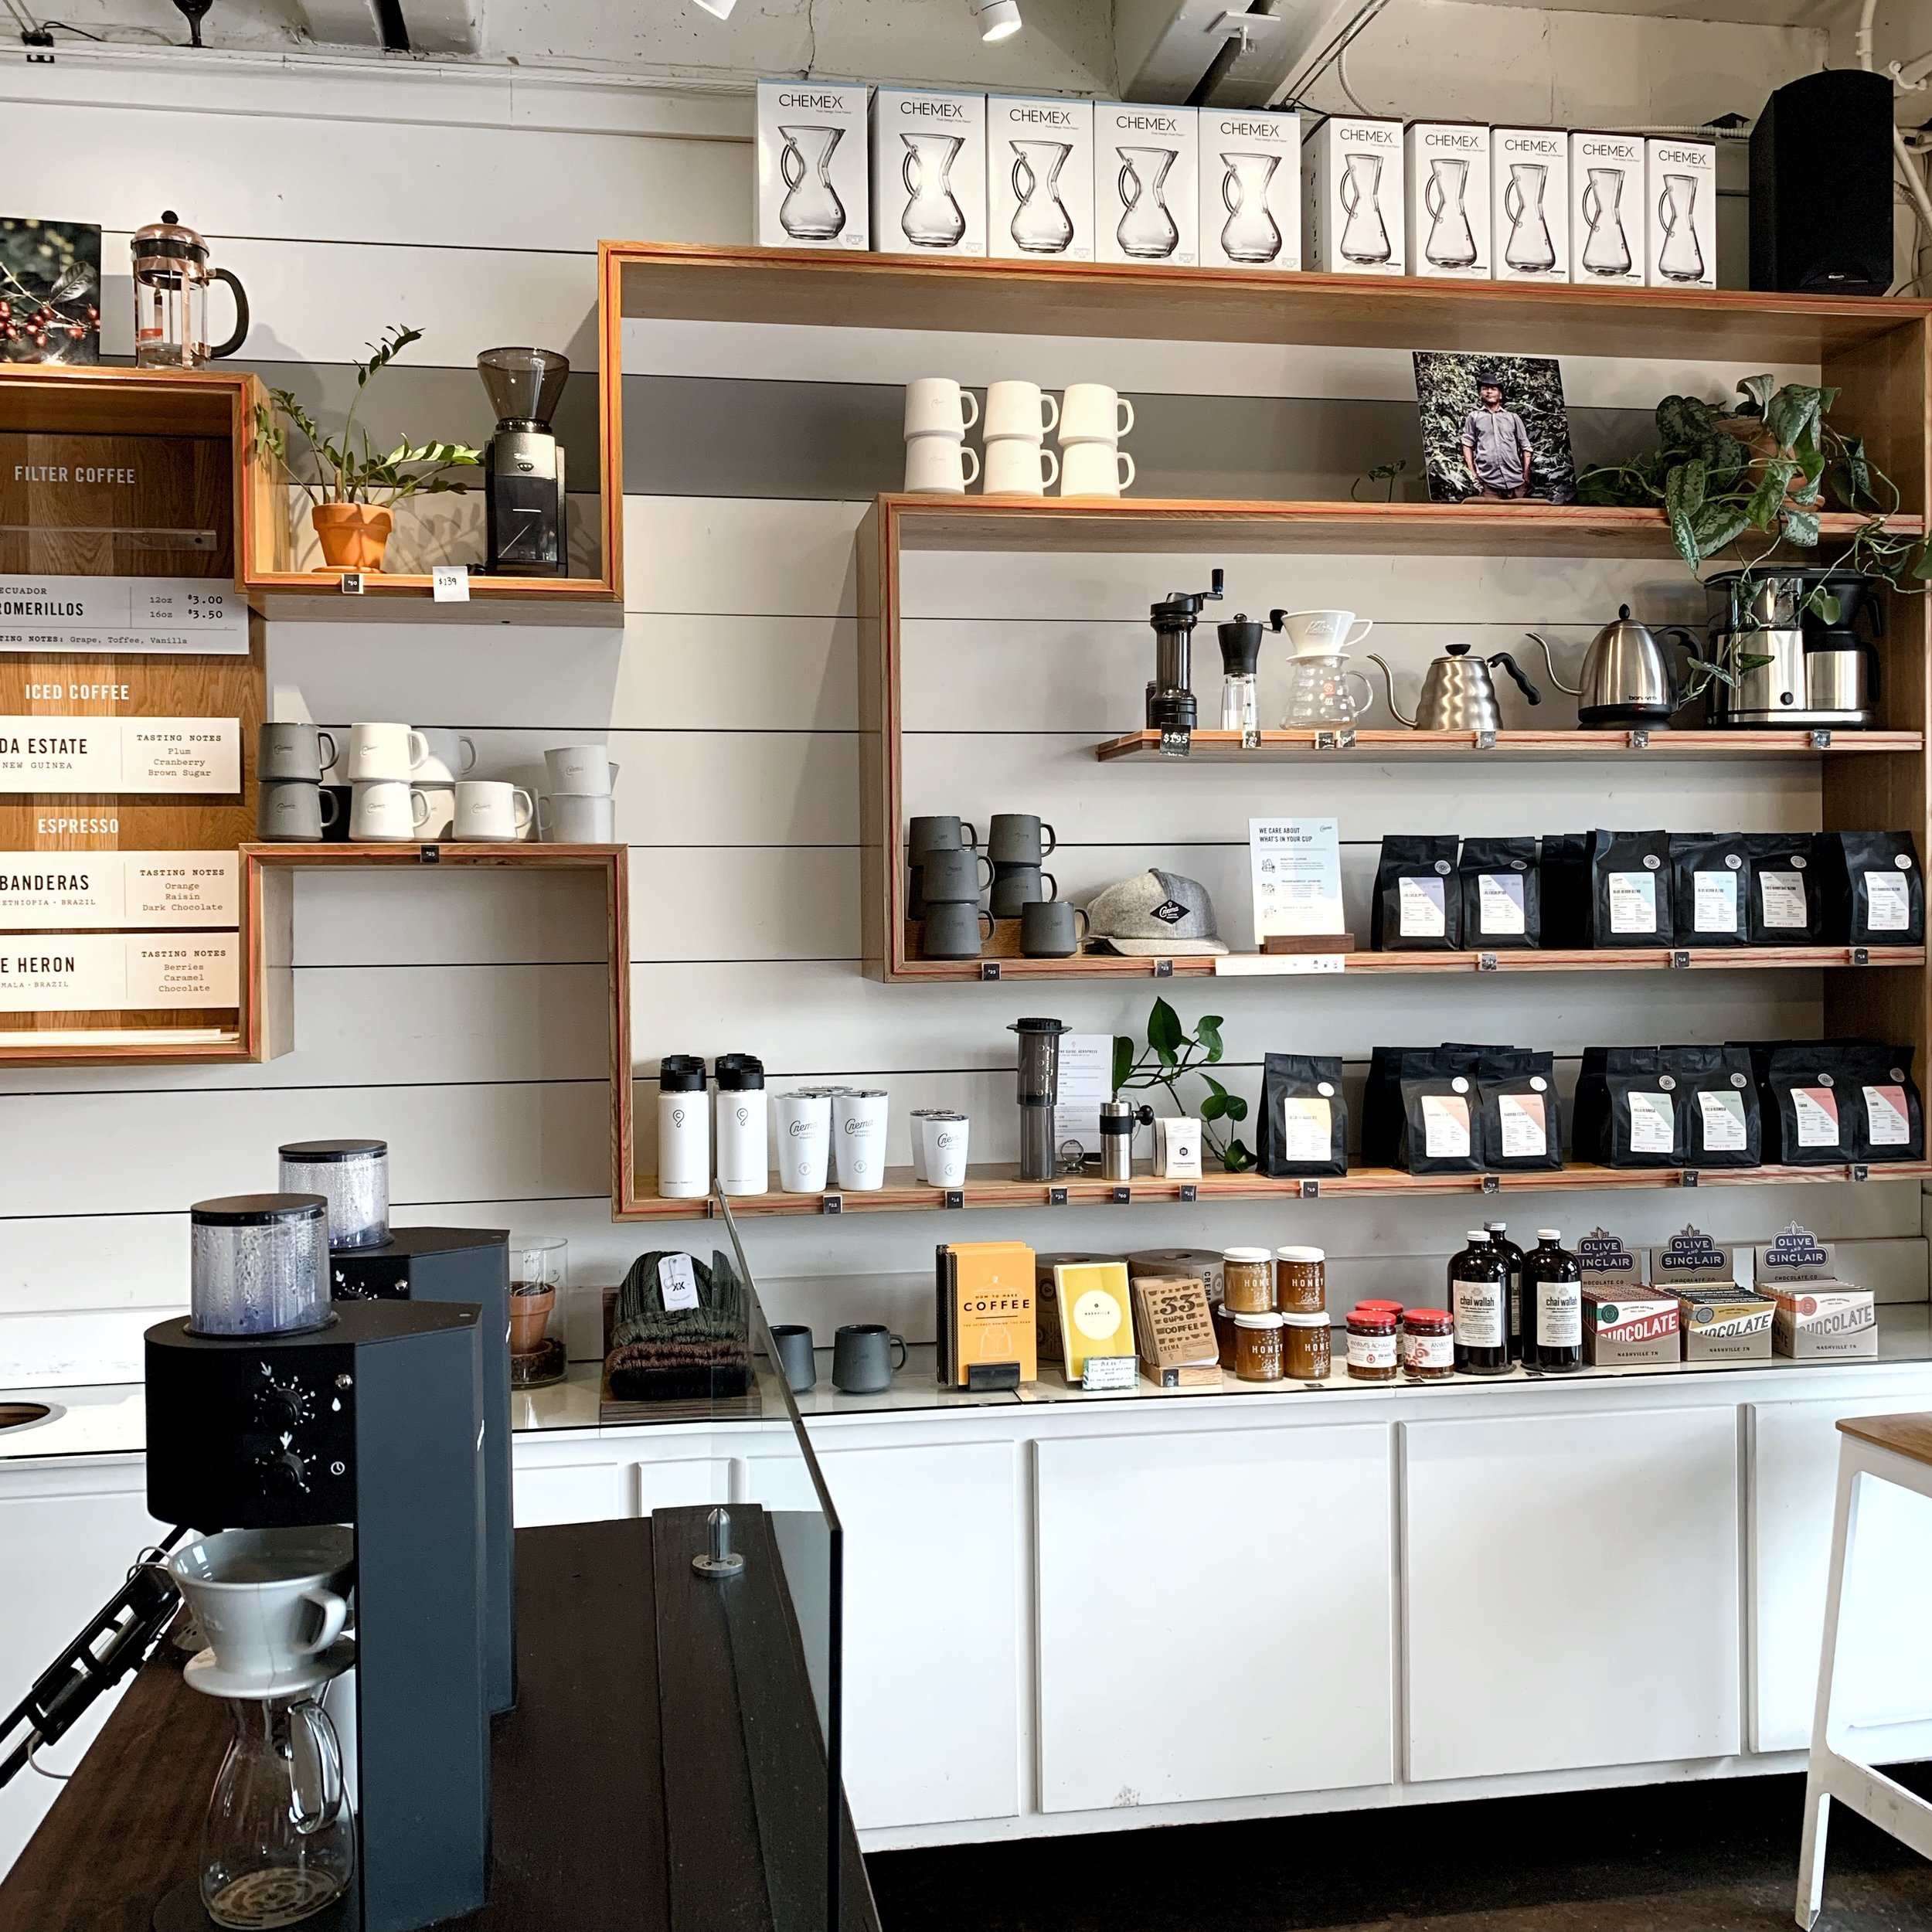 42 hours in Nashville - styled sustainable - crema coffee